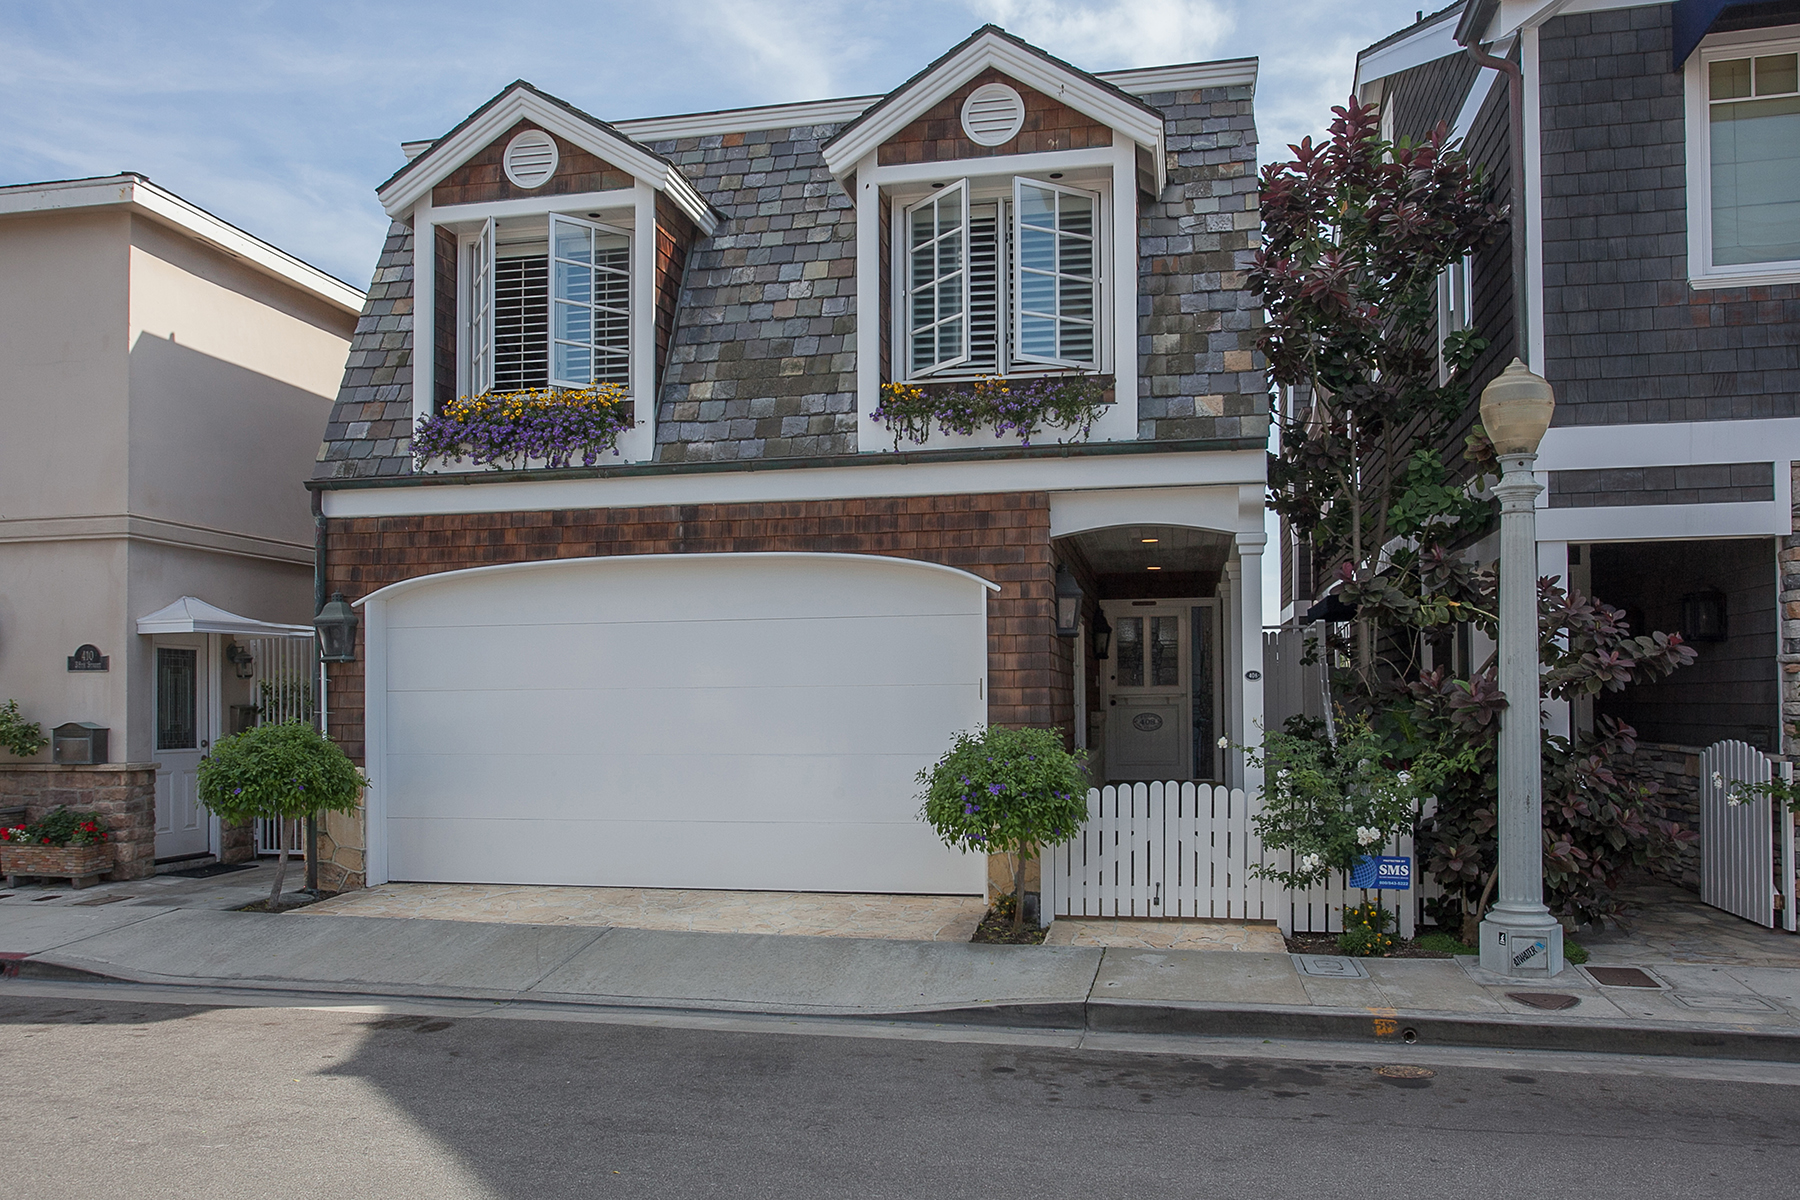 Single Family Home for Sale at 408 38th Street Newport Beach, California 92663 United States